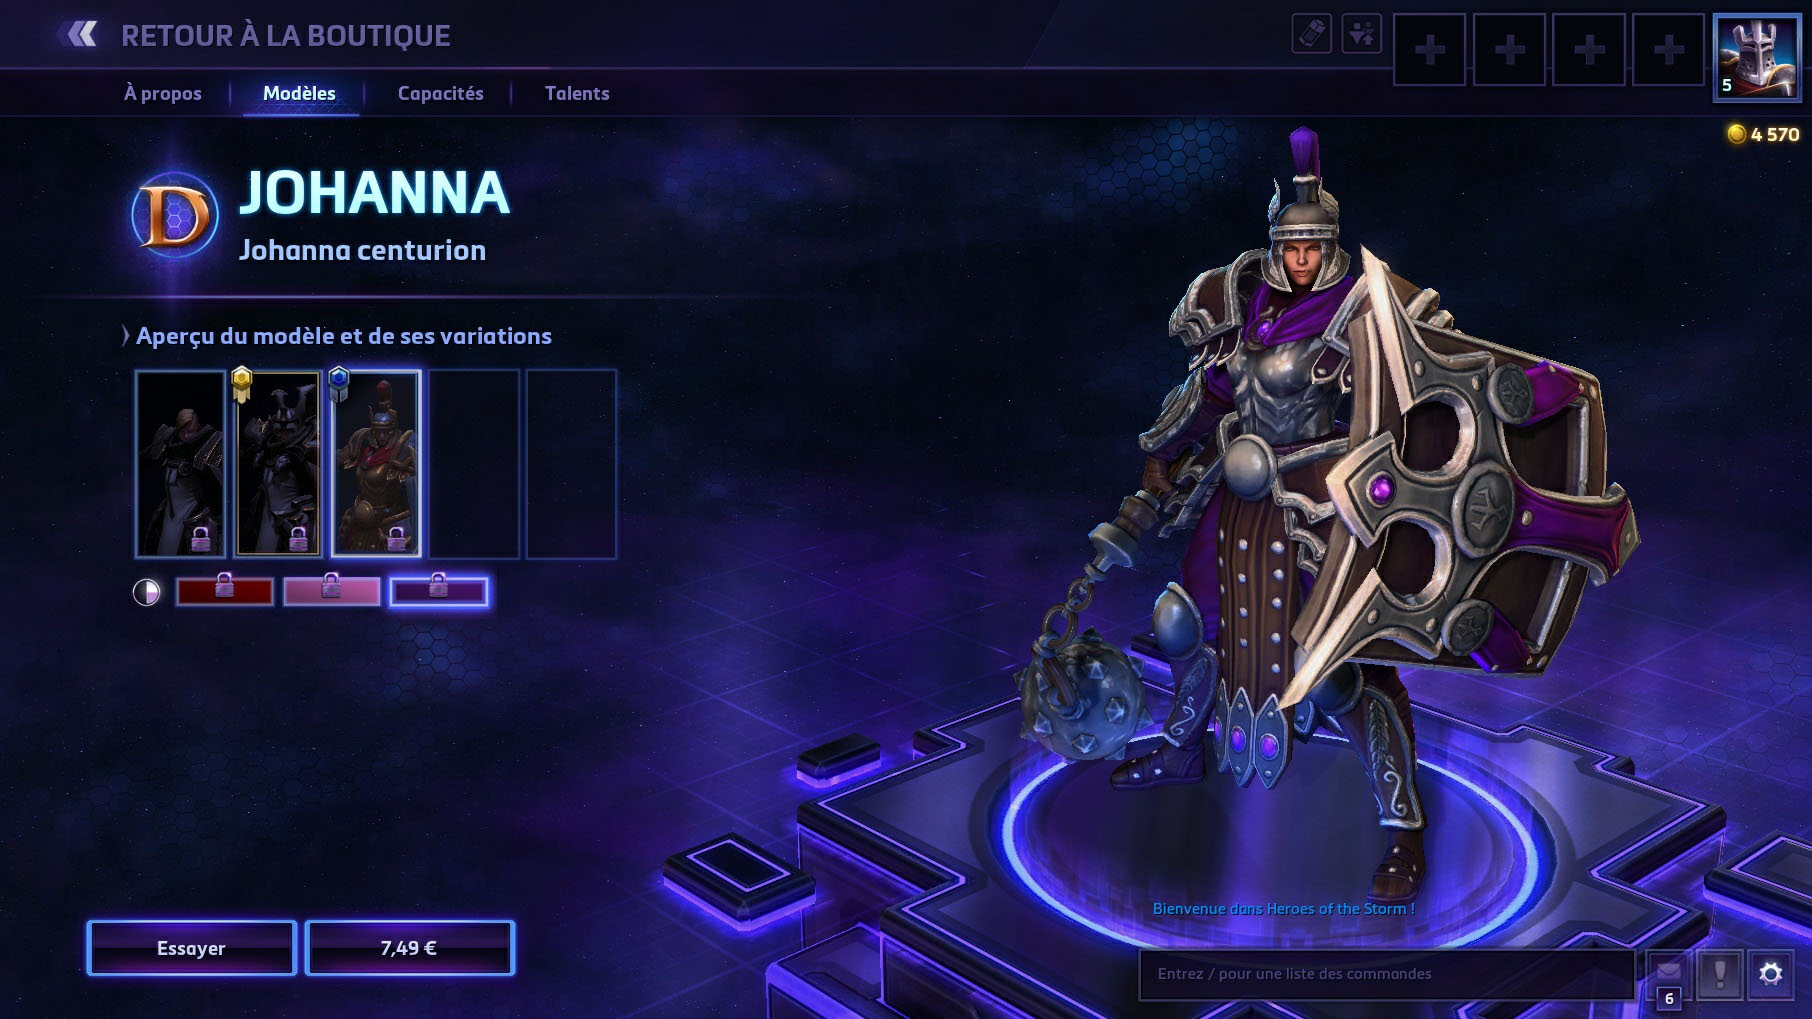 Apparence de Johanna dans Heroes of the Storm